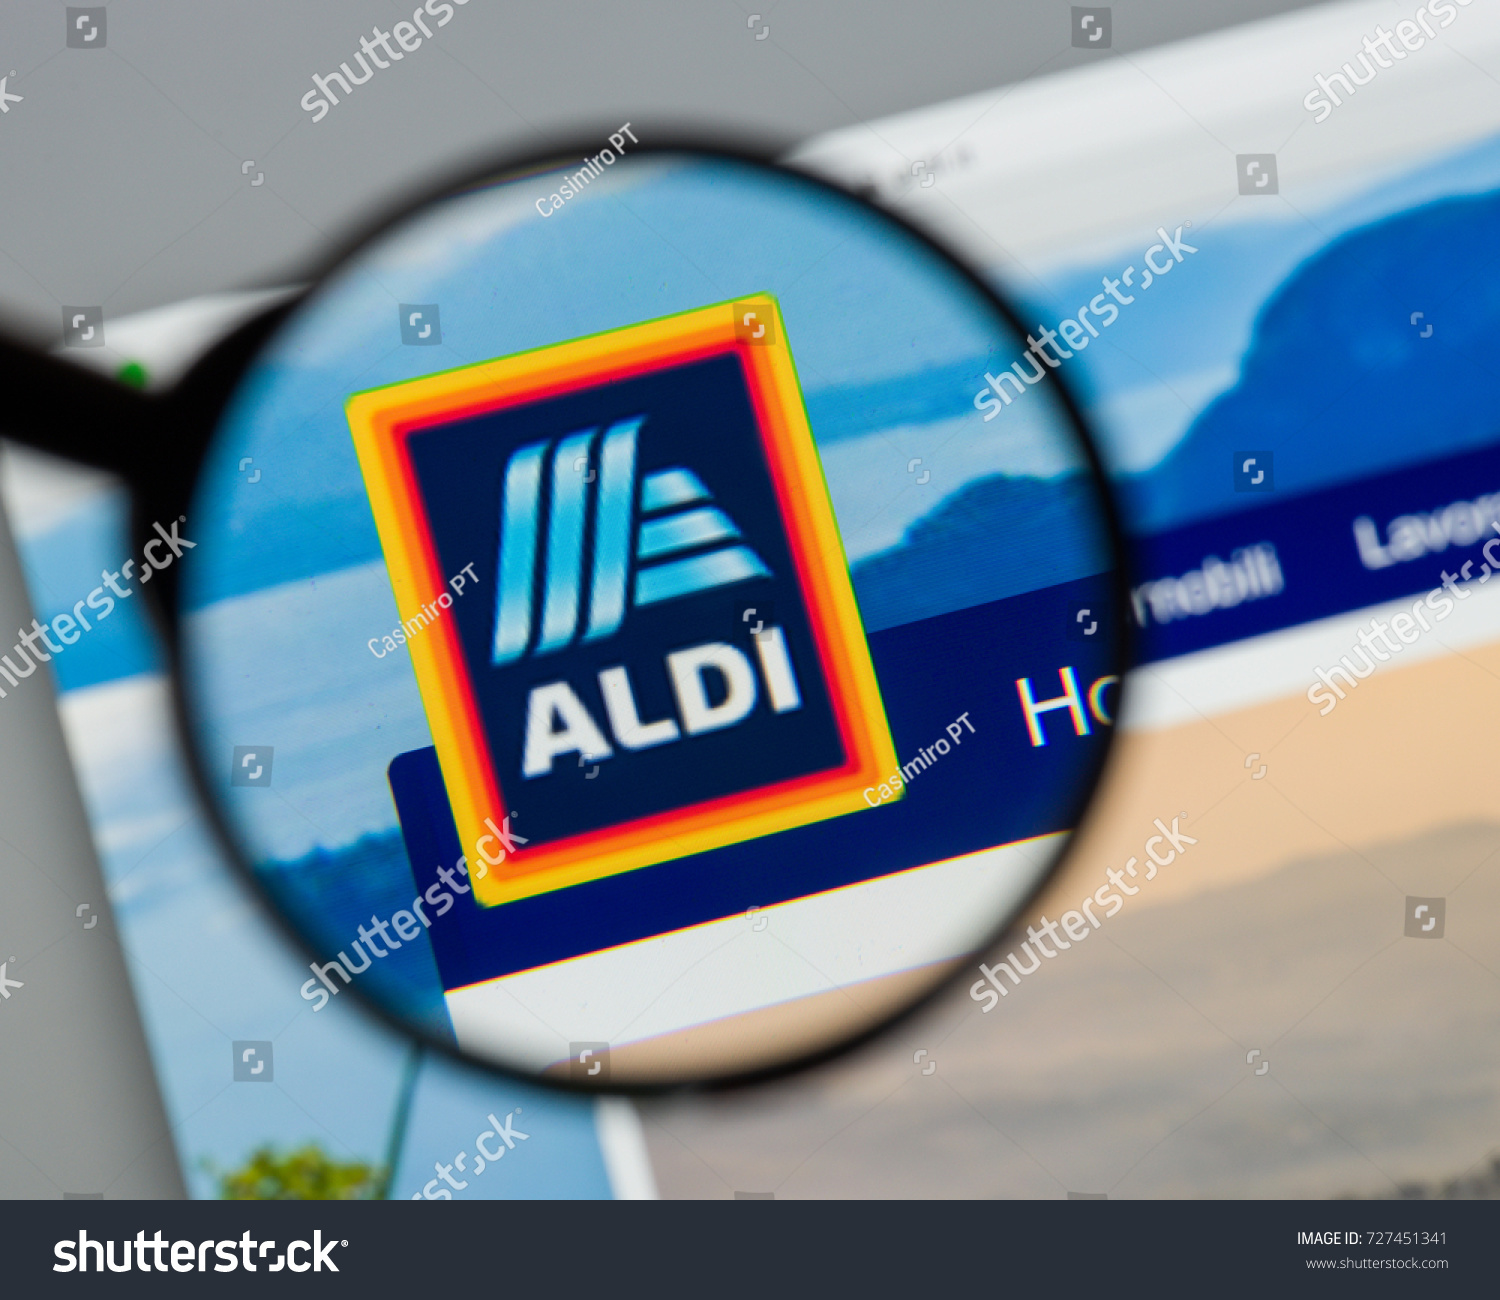 Aldi stock symbol choice image symbol and sign ideas aldi stock market symbol images symbol and sign ideas aldi stock symbol image collections symbol and biocorpaavc